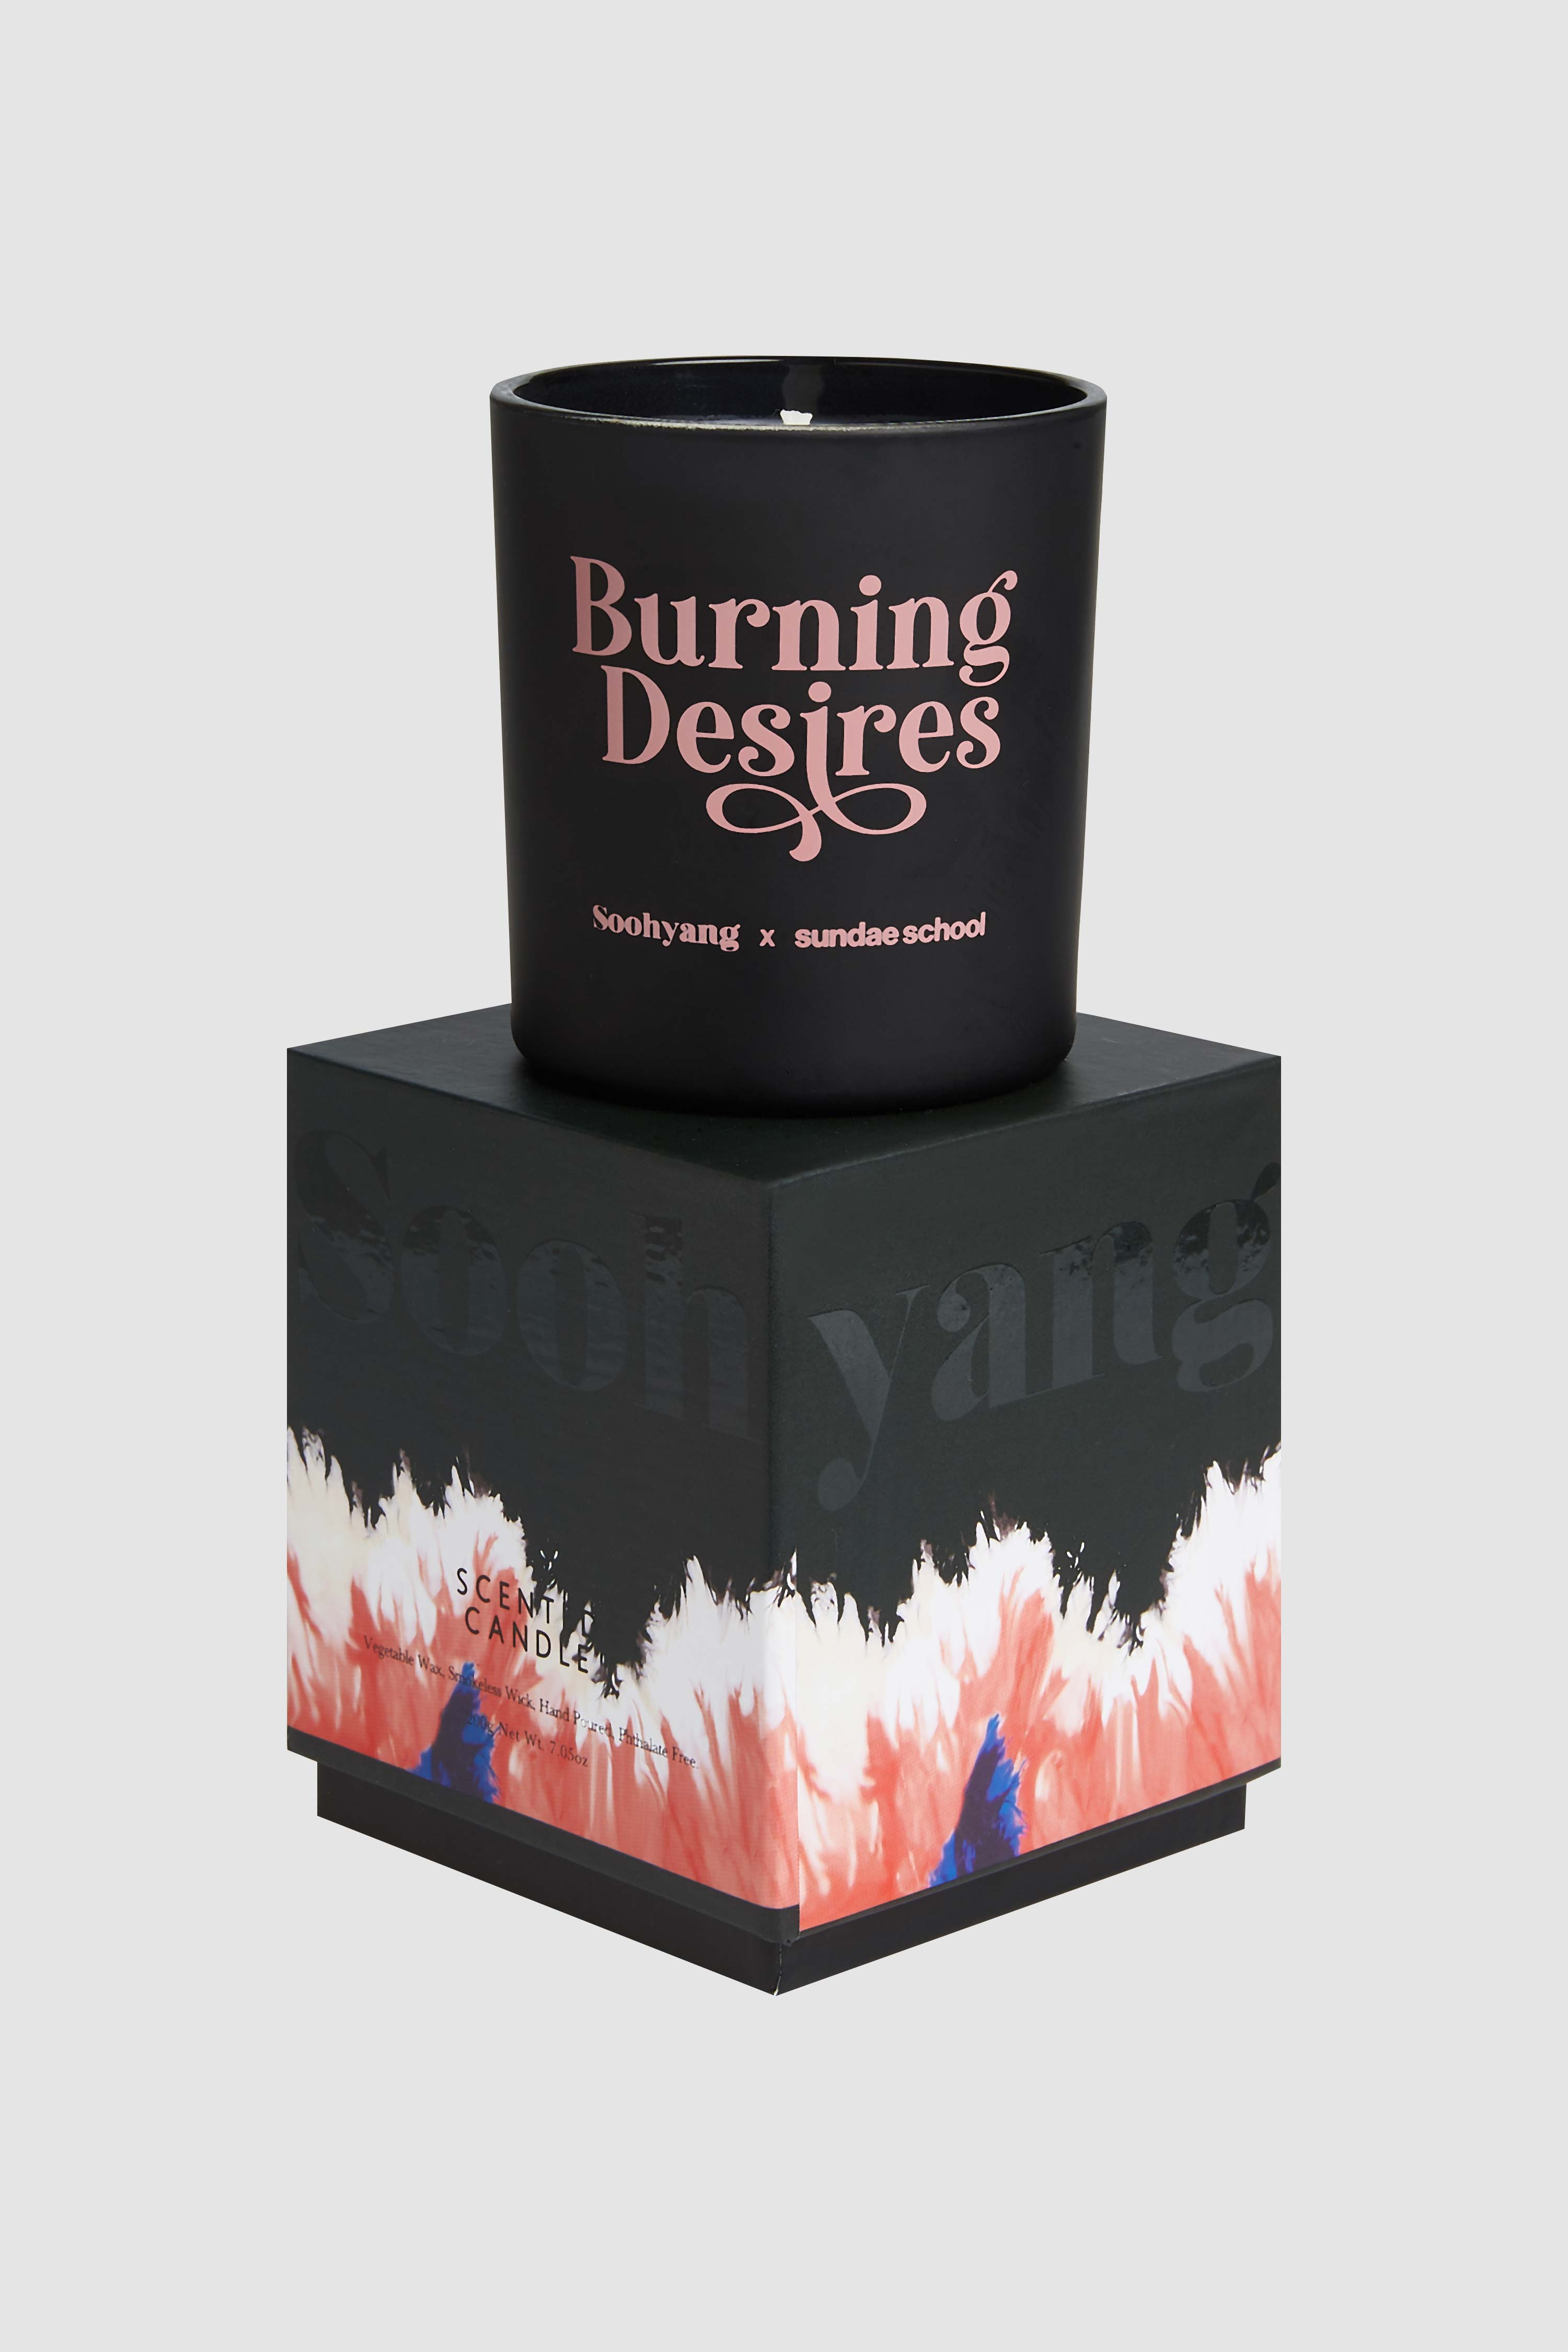 Burning Desires Candle [Collab x Soohyang]